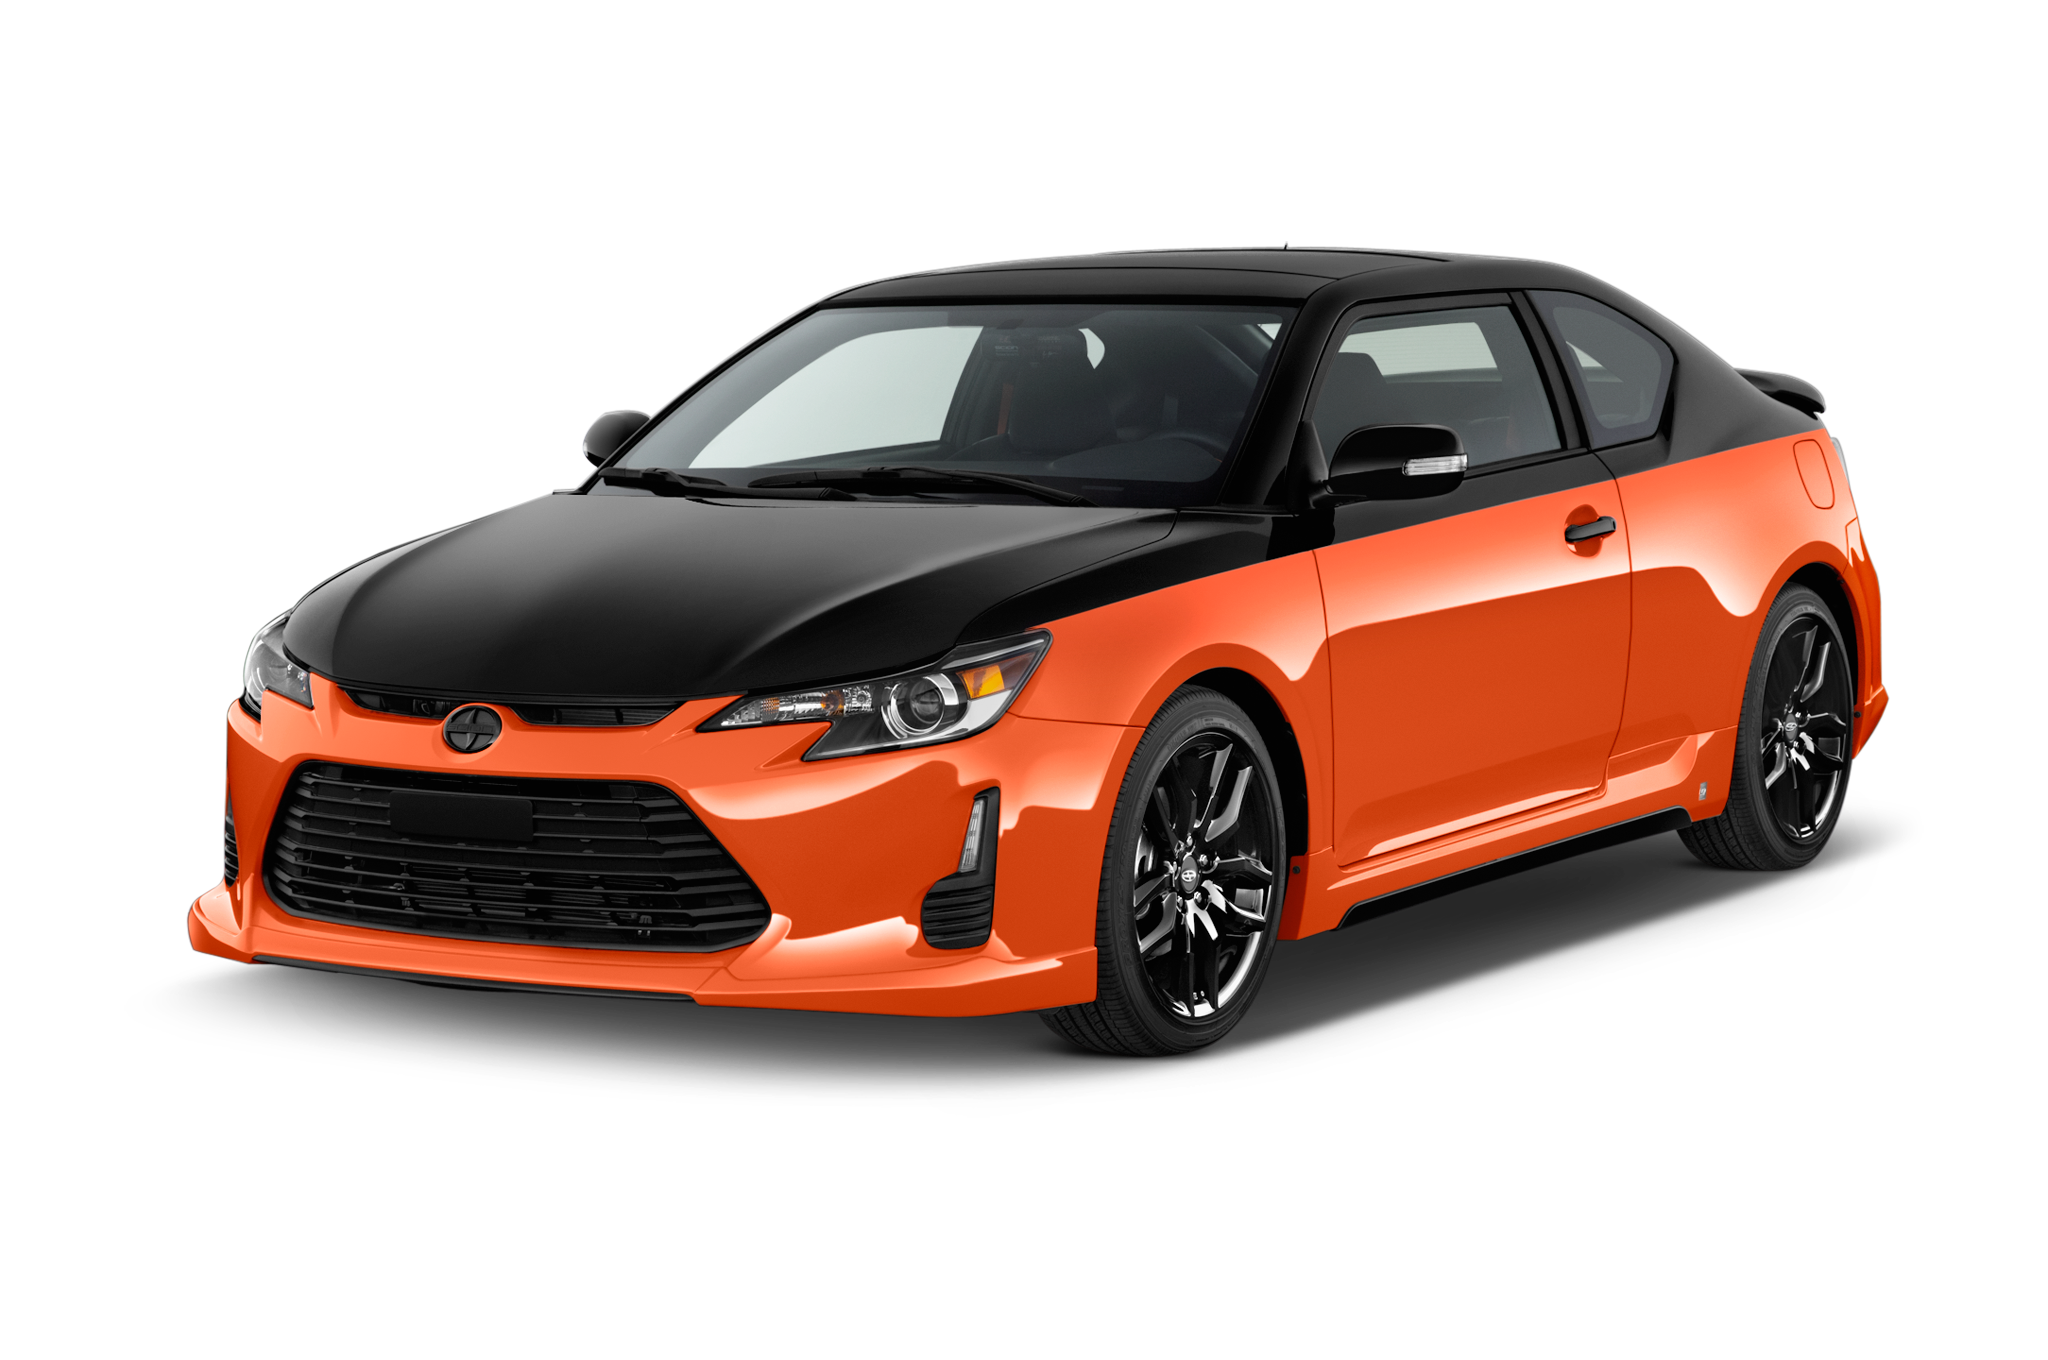 2017 Scion Tc Release Series 9 Interior 19 69 20